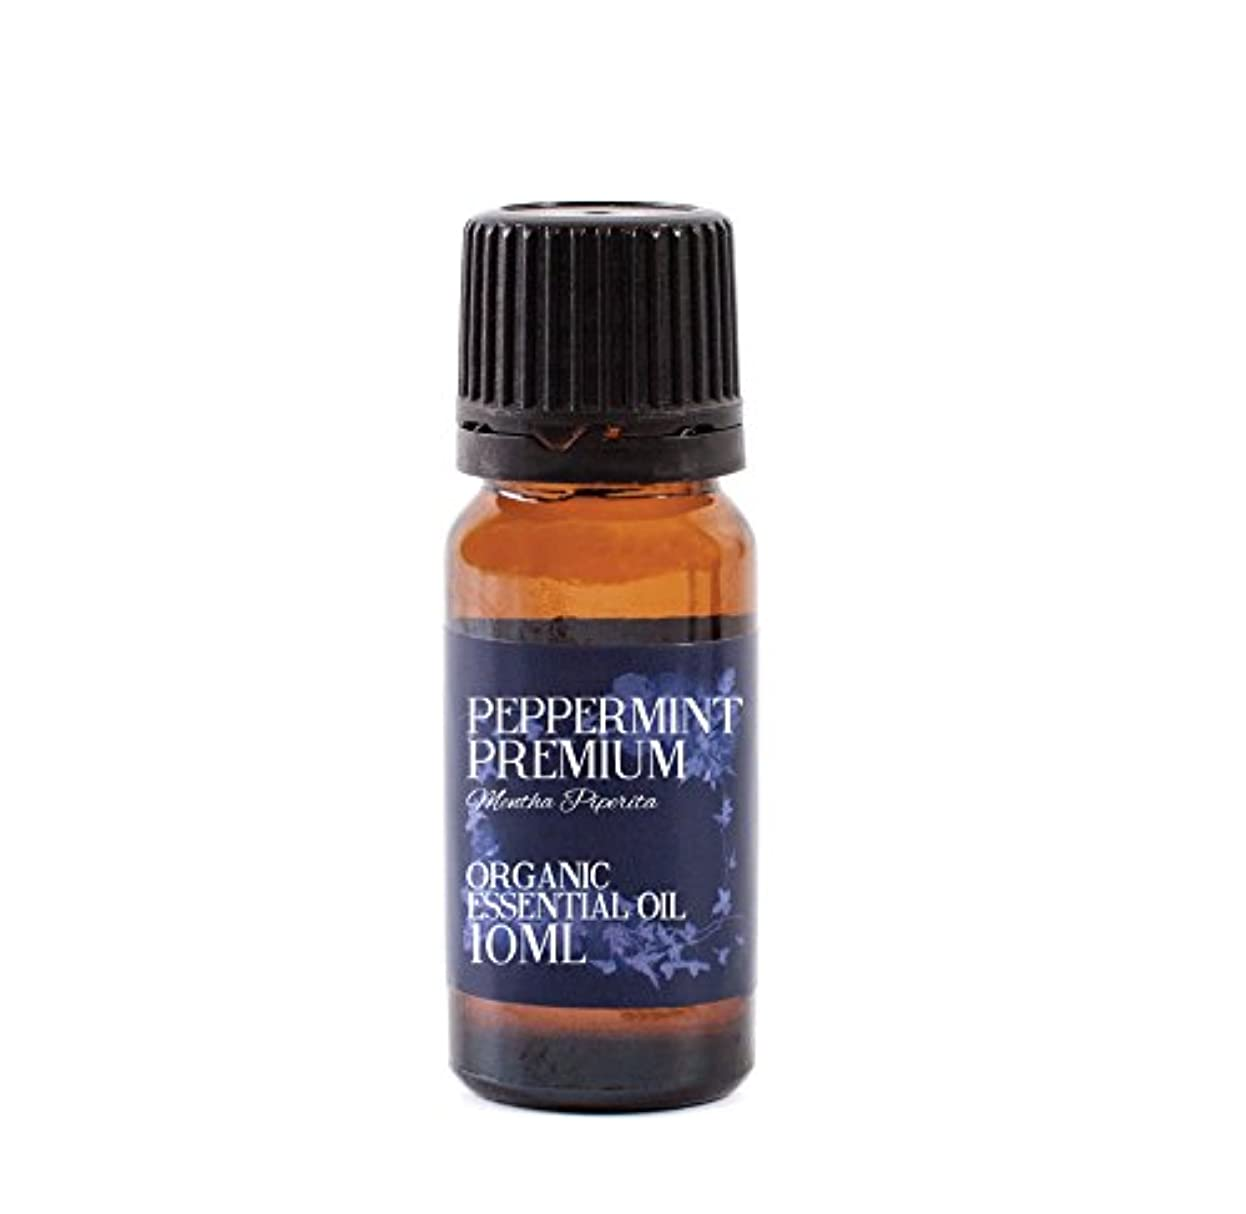 瞑想するお世話になった家事をするMystic Moments | Peppermint Premium Organic Essential Oil - 10ml - 100% Pure